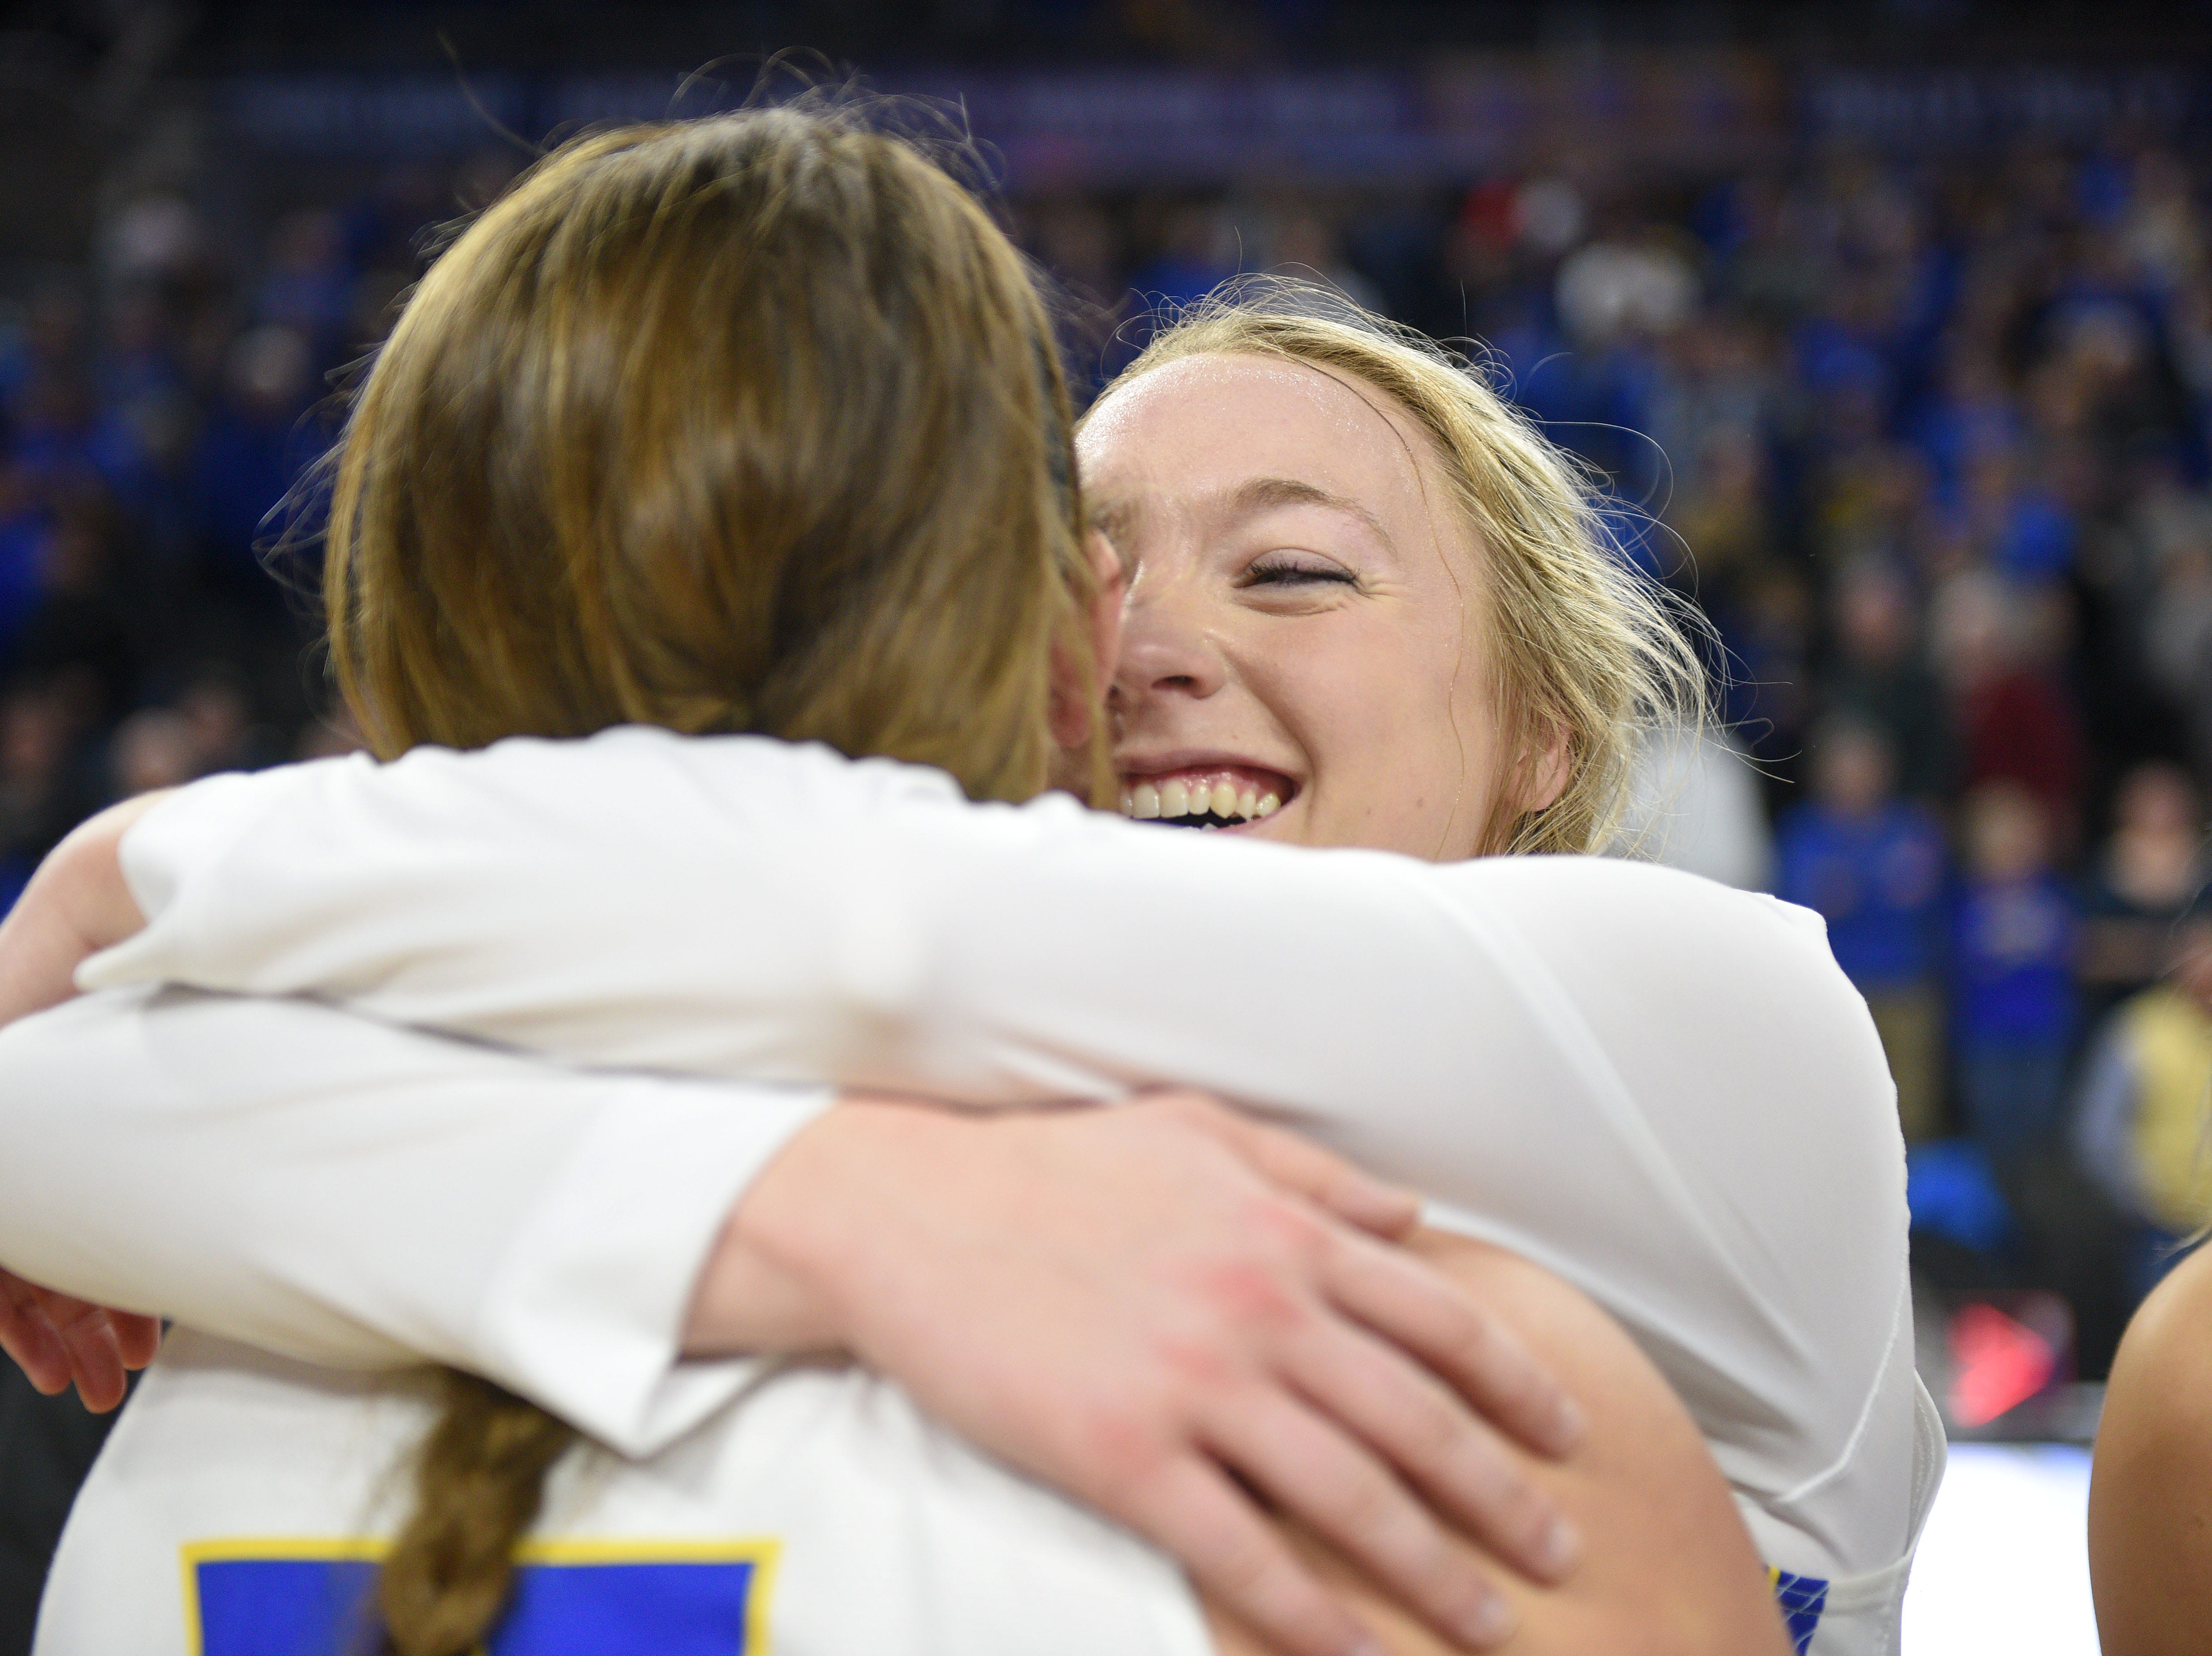 SDSU's Madison Guebert hugs her teammates after their win against USD Tuesday, March 12, in the Summit League women's championship at the Denny Sanford Premier Center in Sioux Falls.